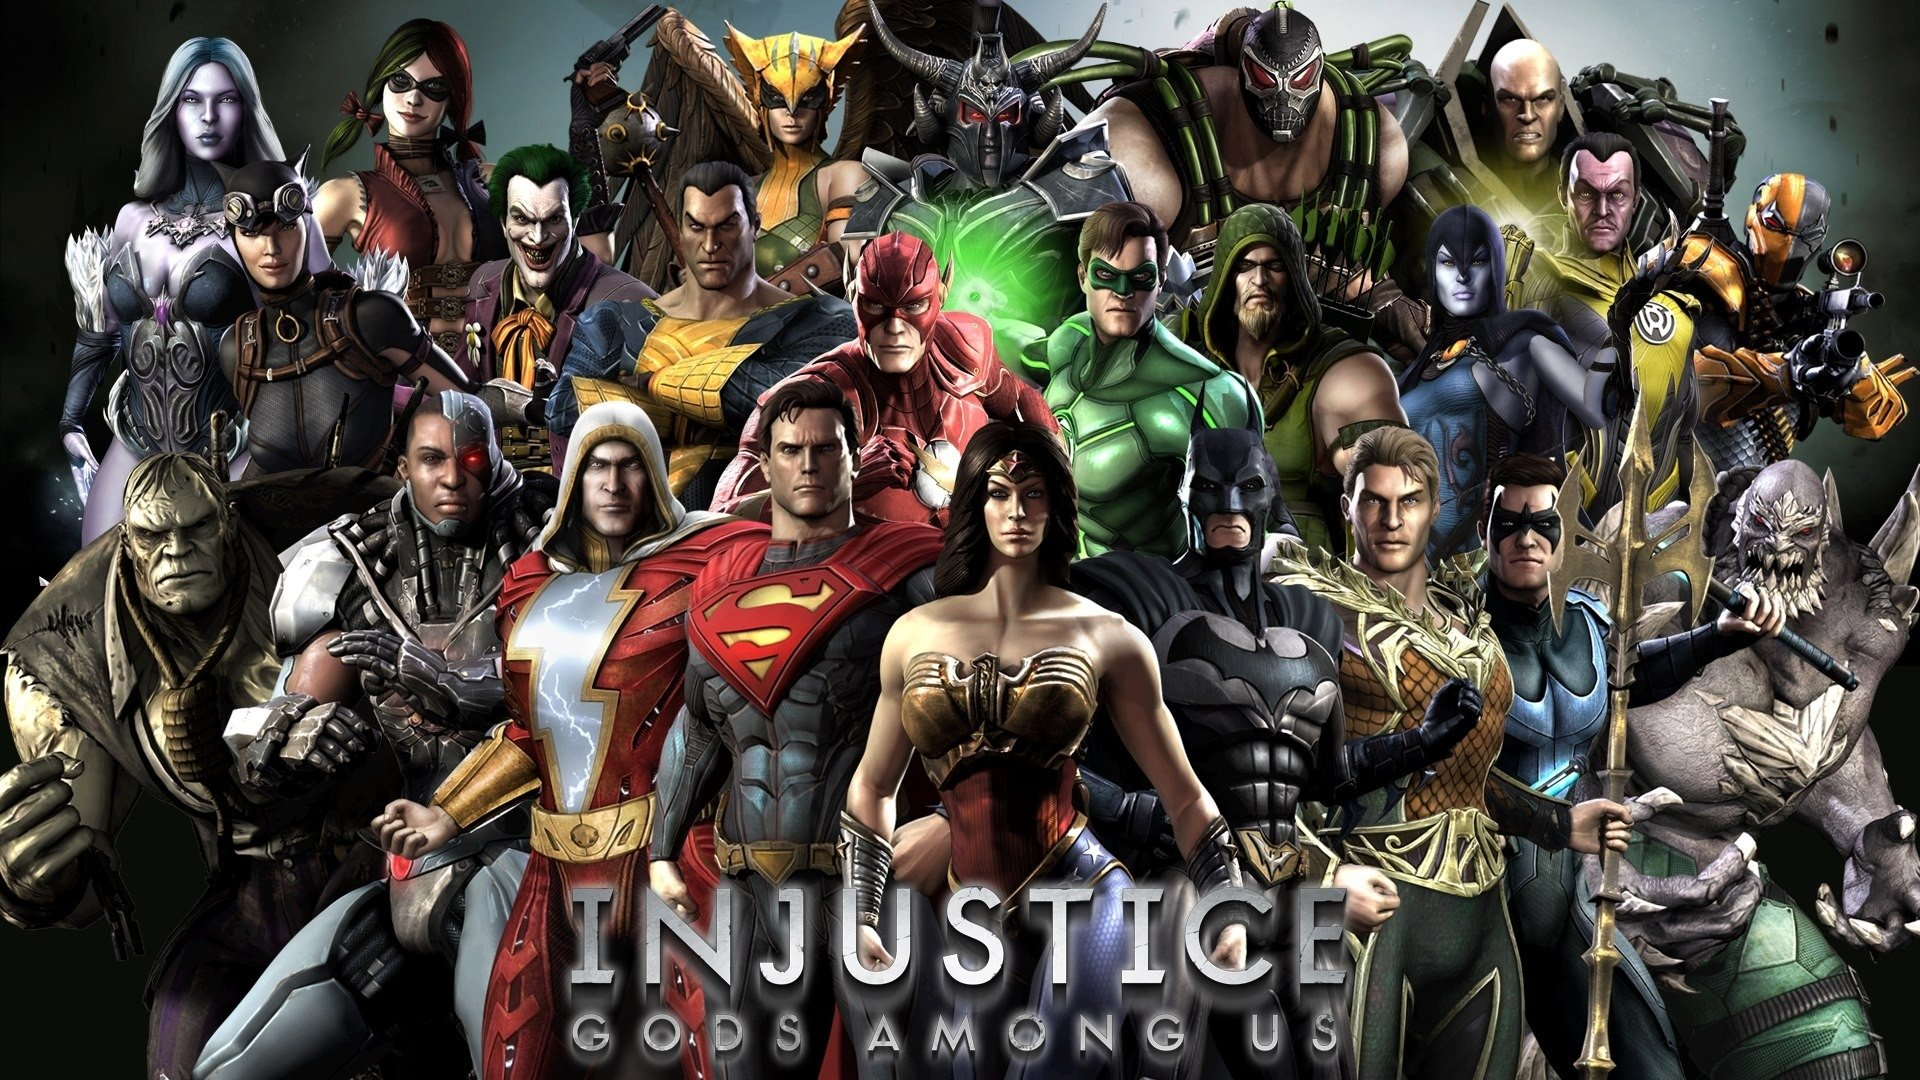 Injustice gods among us full hd wallpaper and background image video game injustice gods among us wallpaper voltagebd Image collections